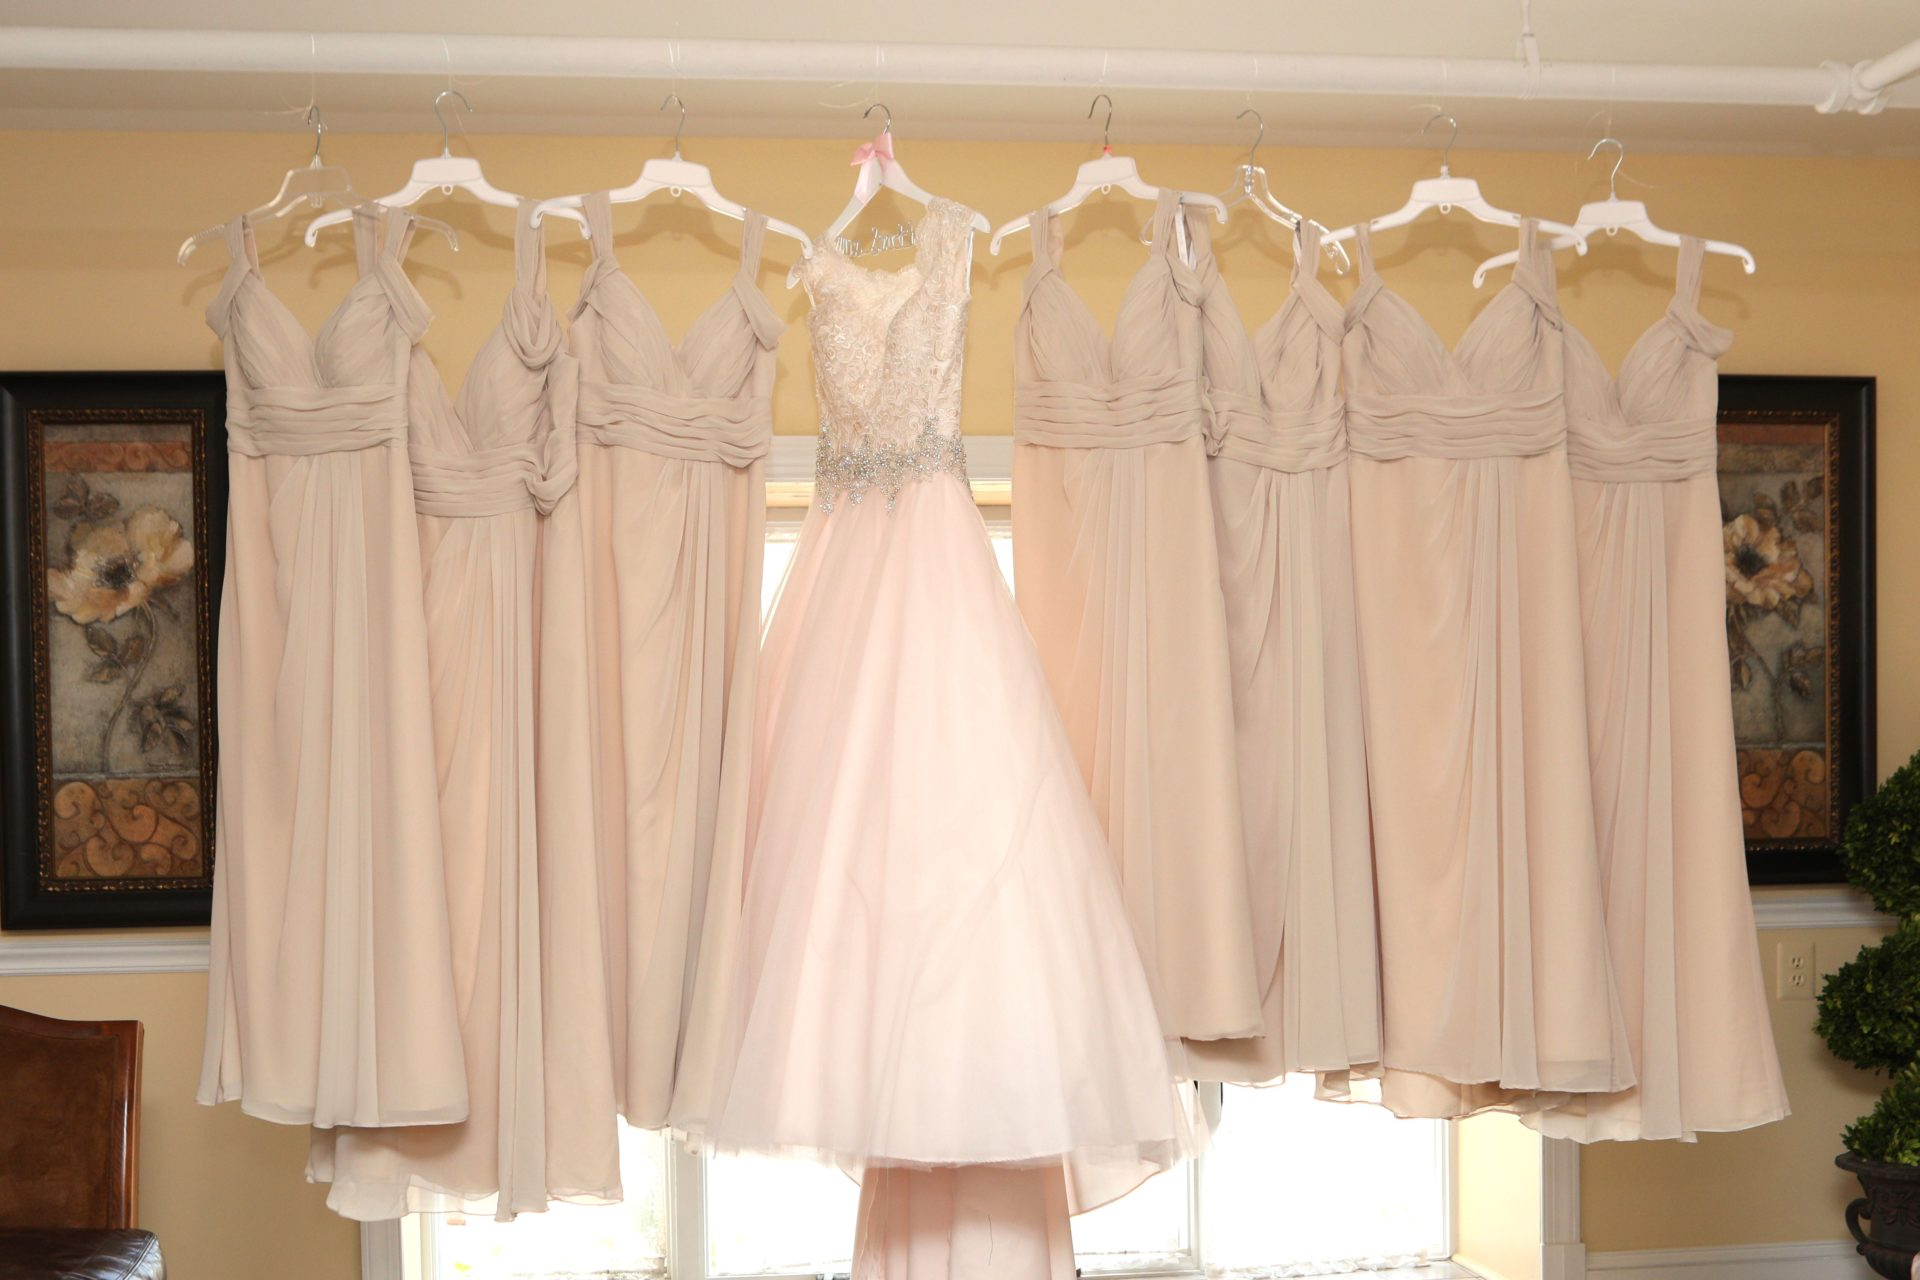 Wedding dress and bride's maid dress hang in the brides room at Morningside Inn wedding venue in Frederick Maryland